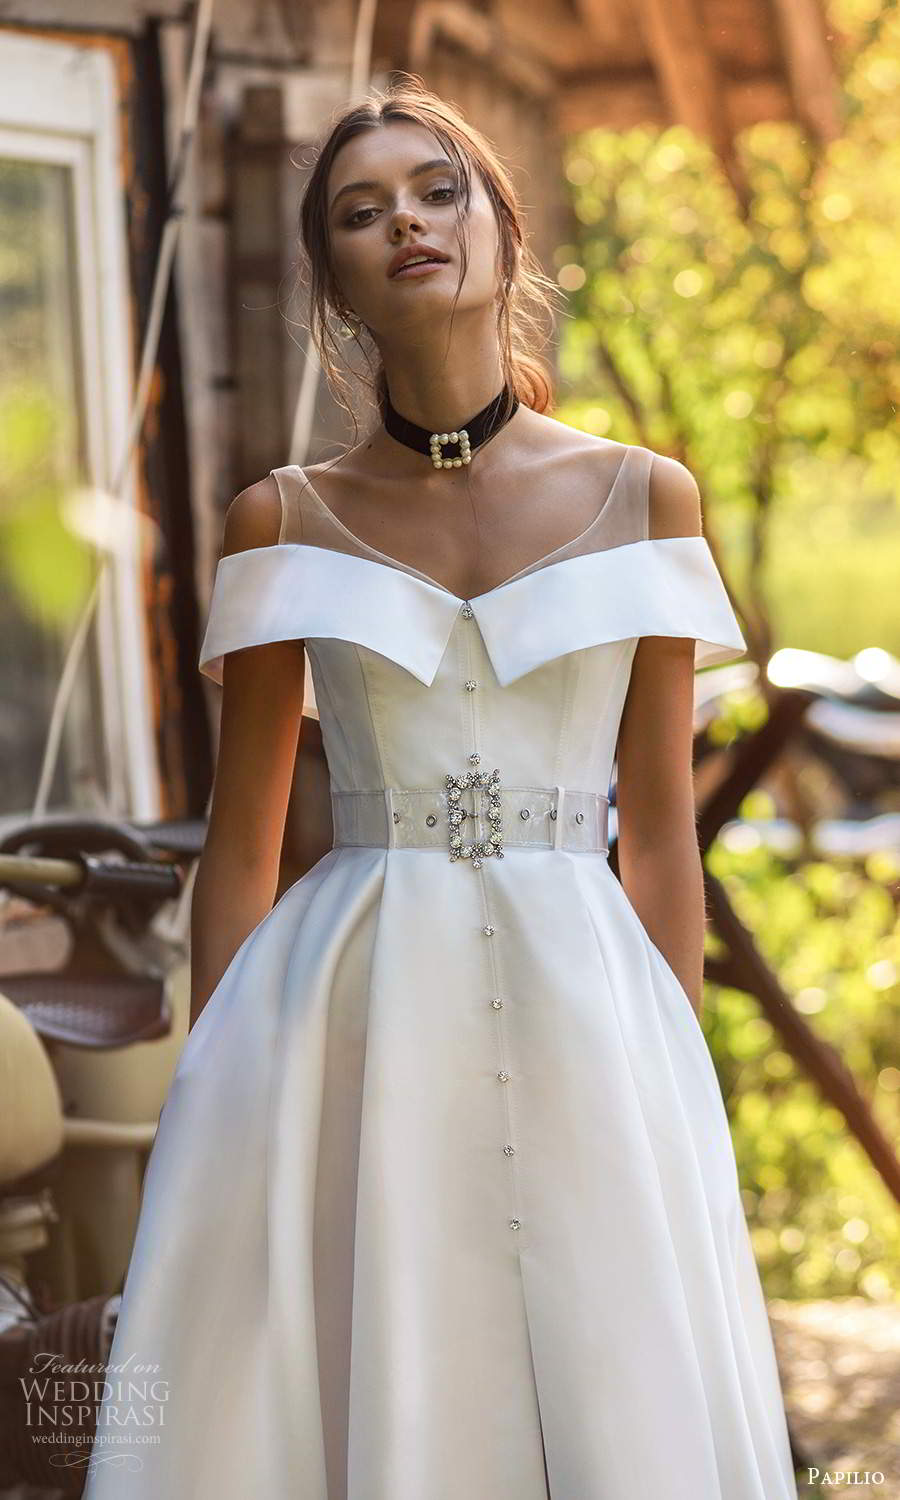 papili 2020 freedom bridal off shoulder sleeves illusion straps clean minimalist a line ball gown wedding dress slit skirt chapel train (1) zv